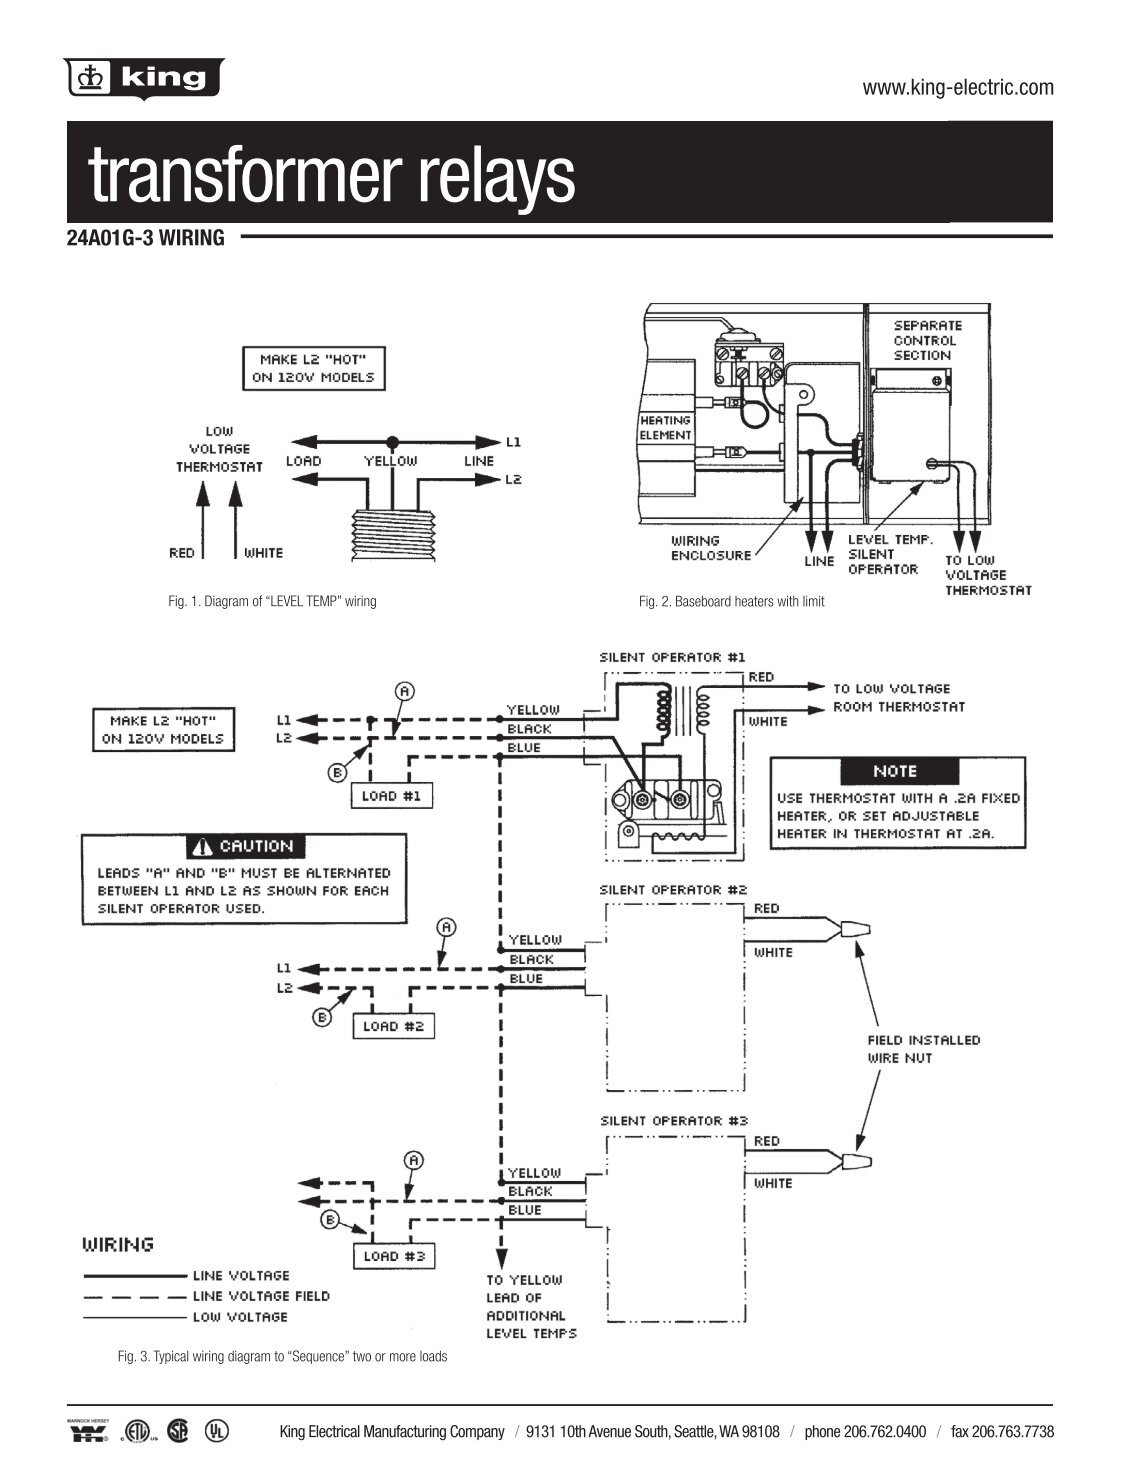 kubota stereo wiring diagram wiring diagrams u2022 kubota cooling system diagram electrical wiring diagram kubota b2650 [ 1137 x 1471 Pixel ]